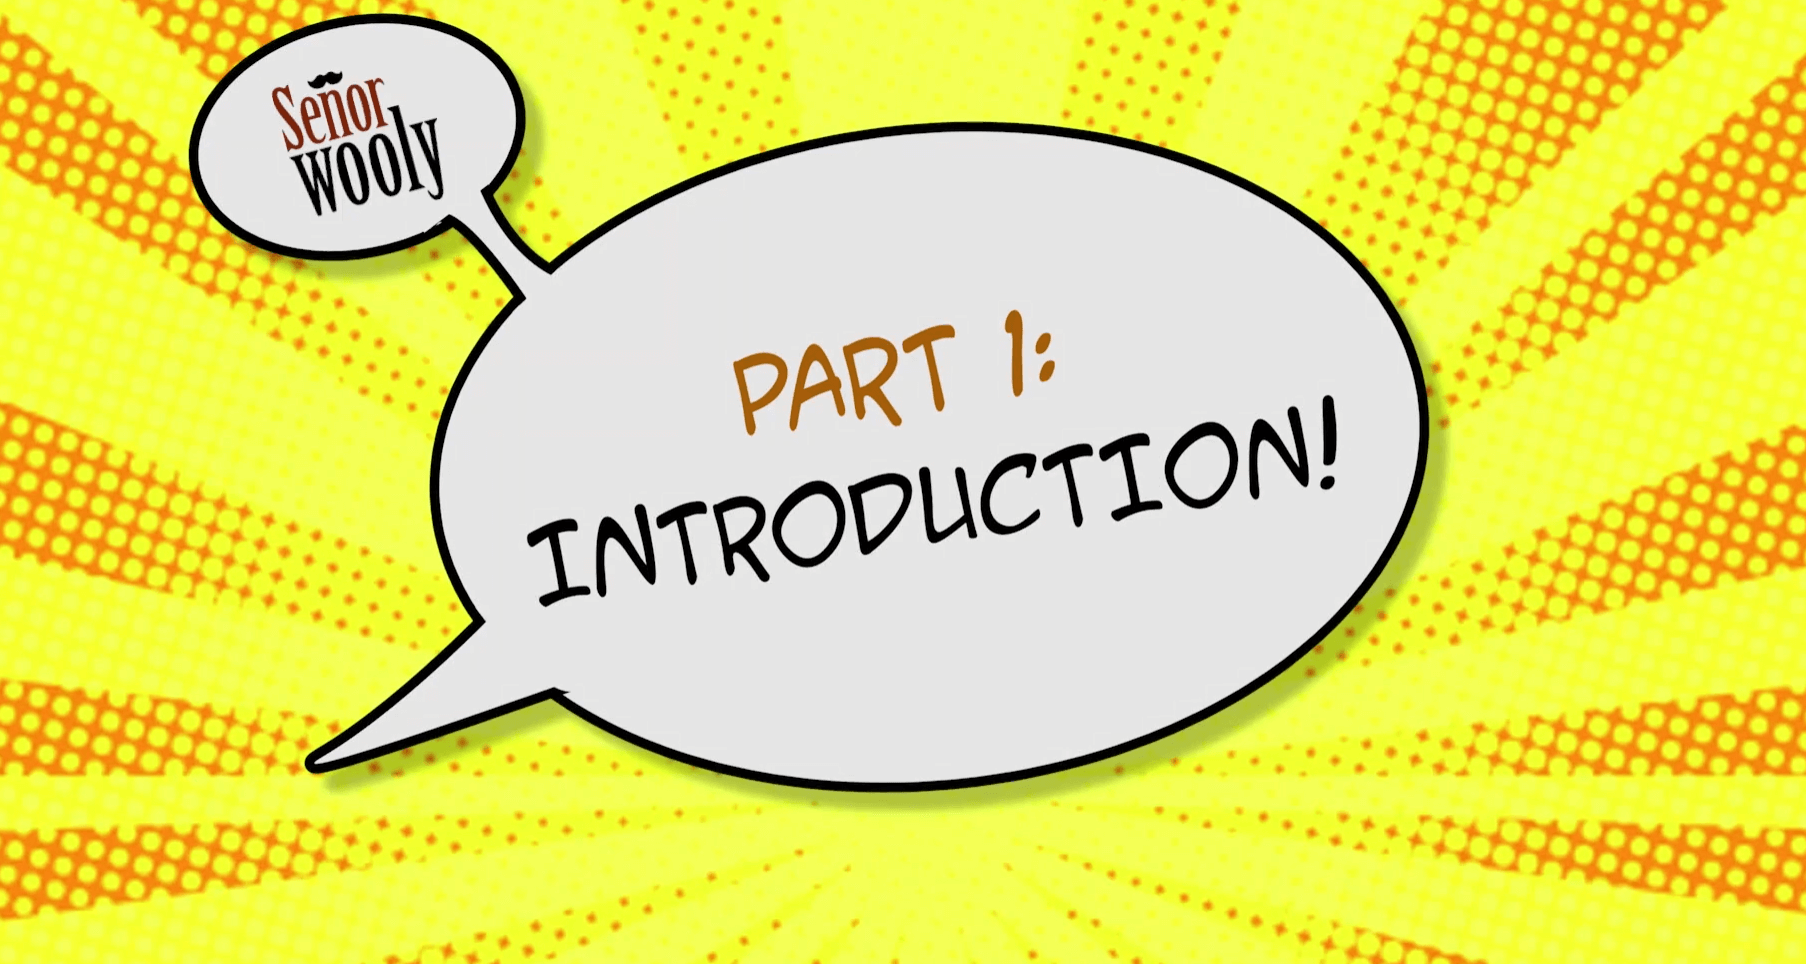 Part 1 - Introduction!